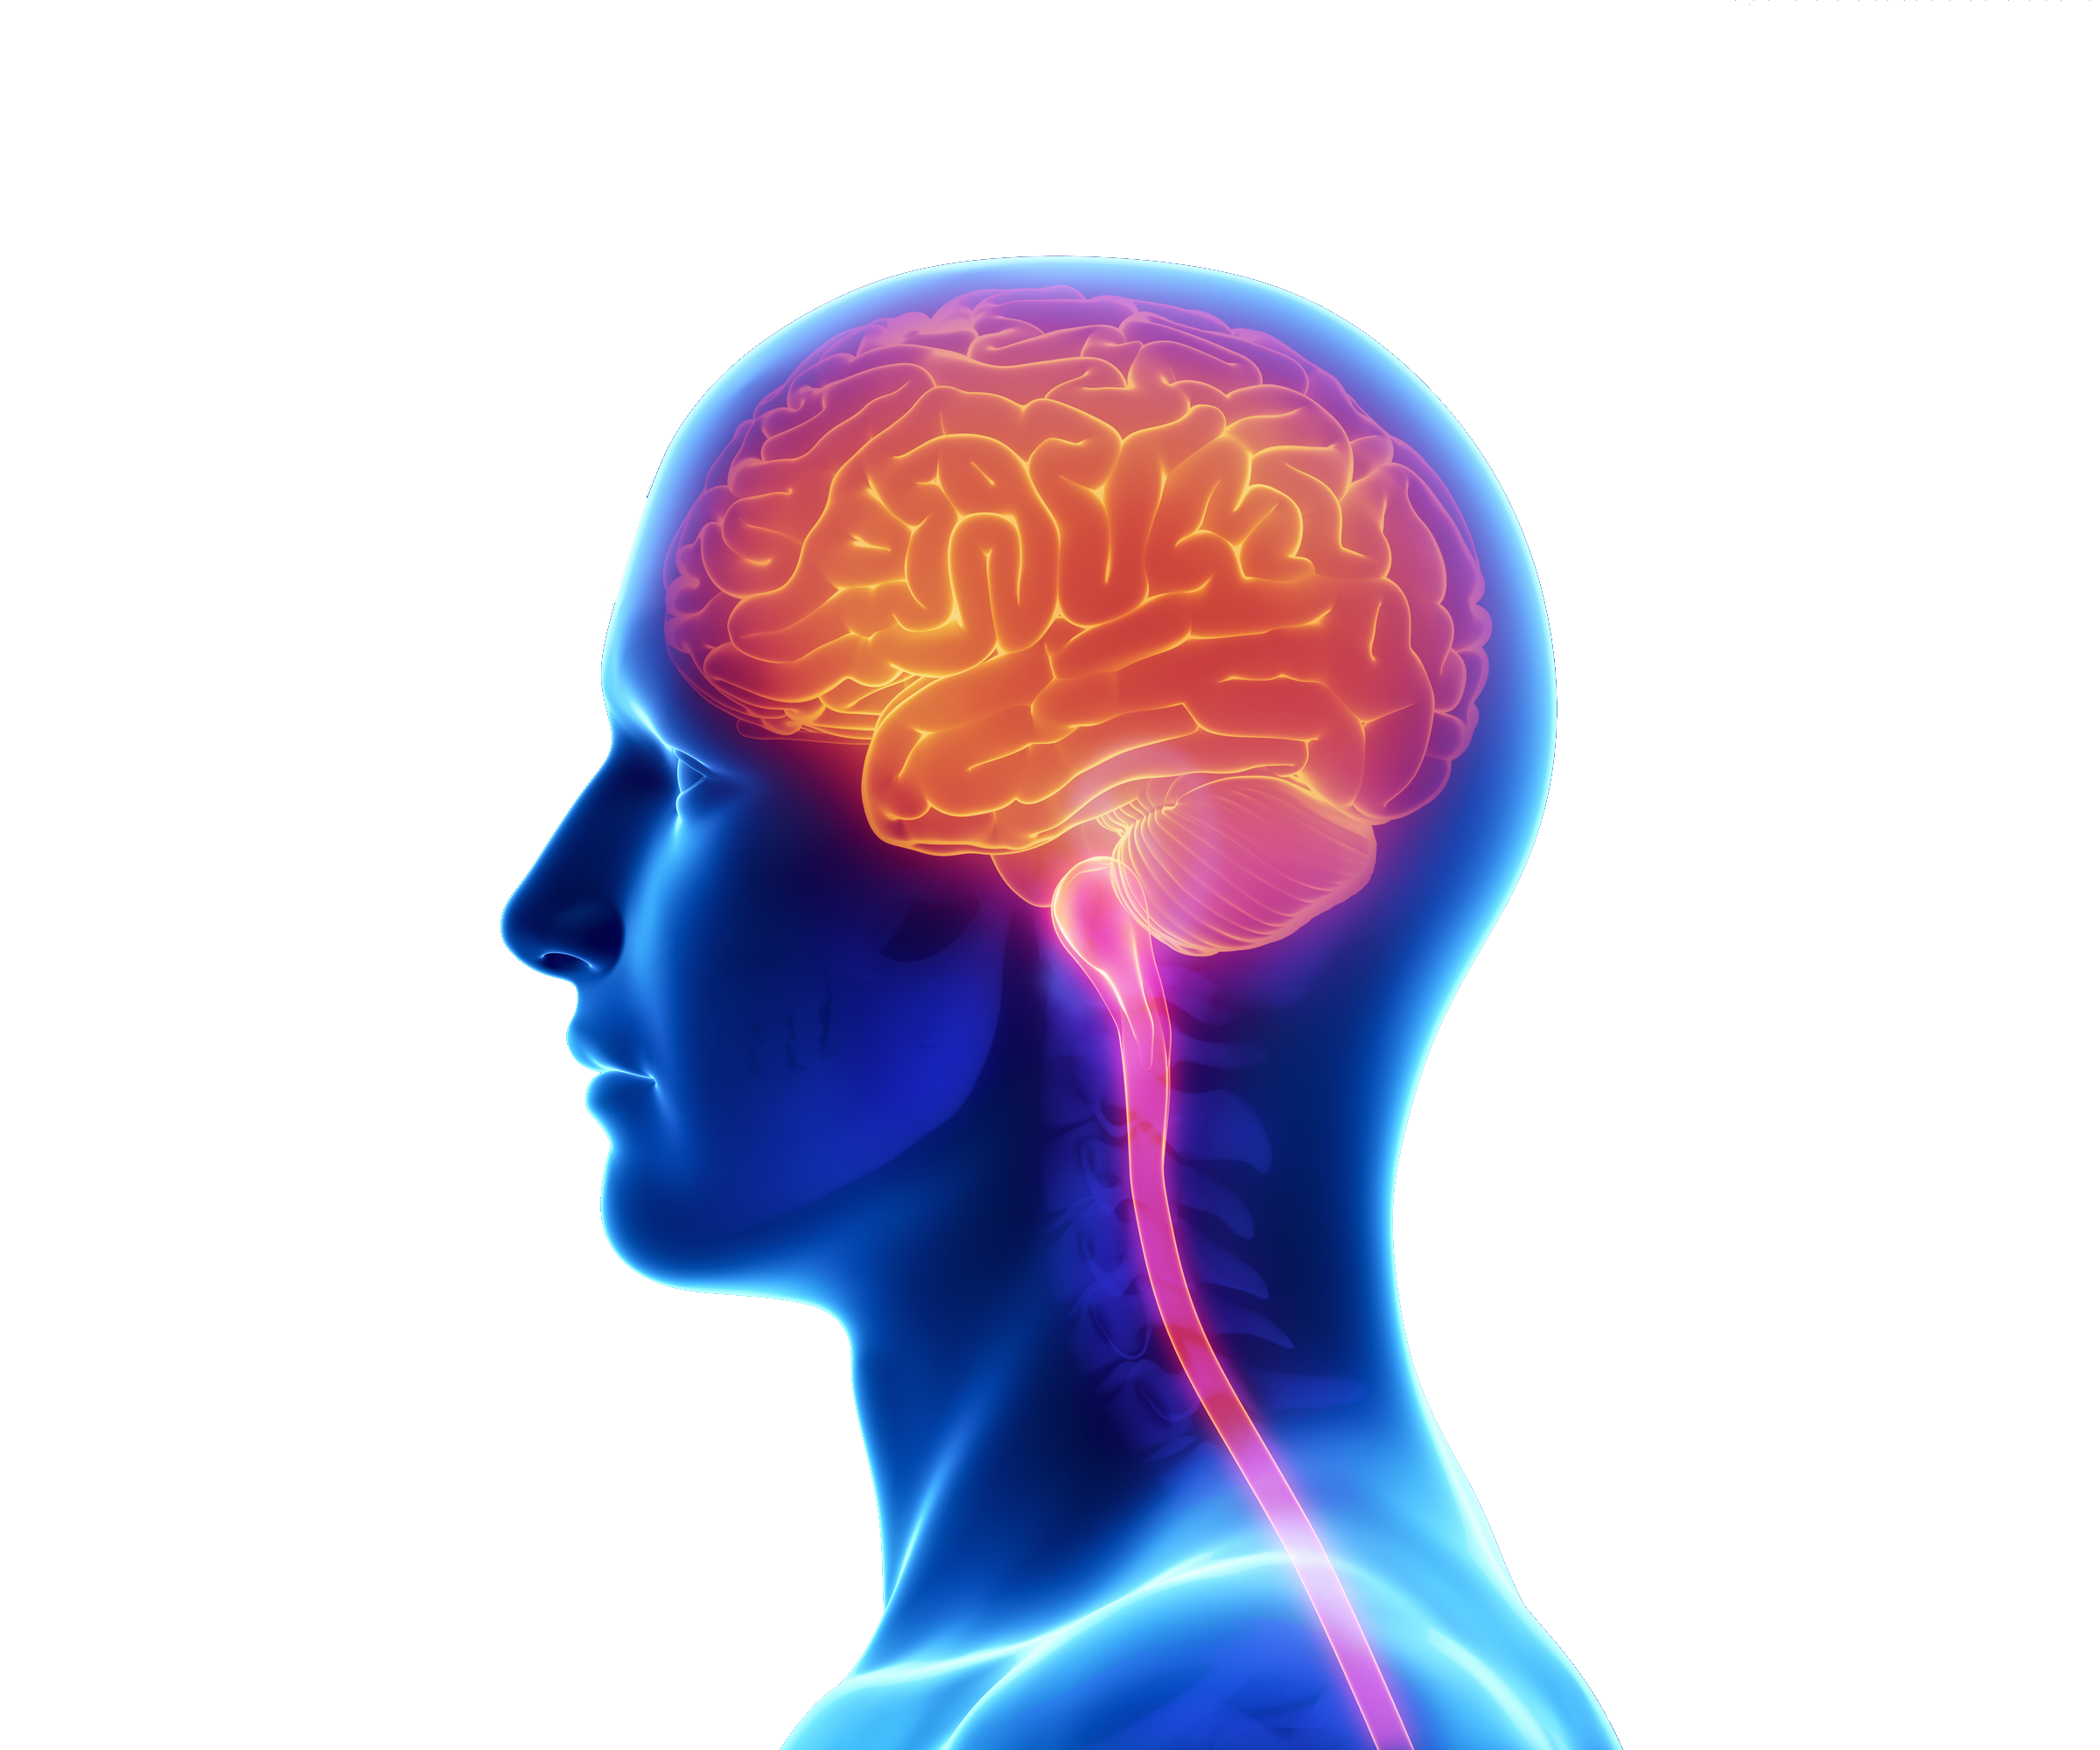 Spine clipart brain. Human and png file